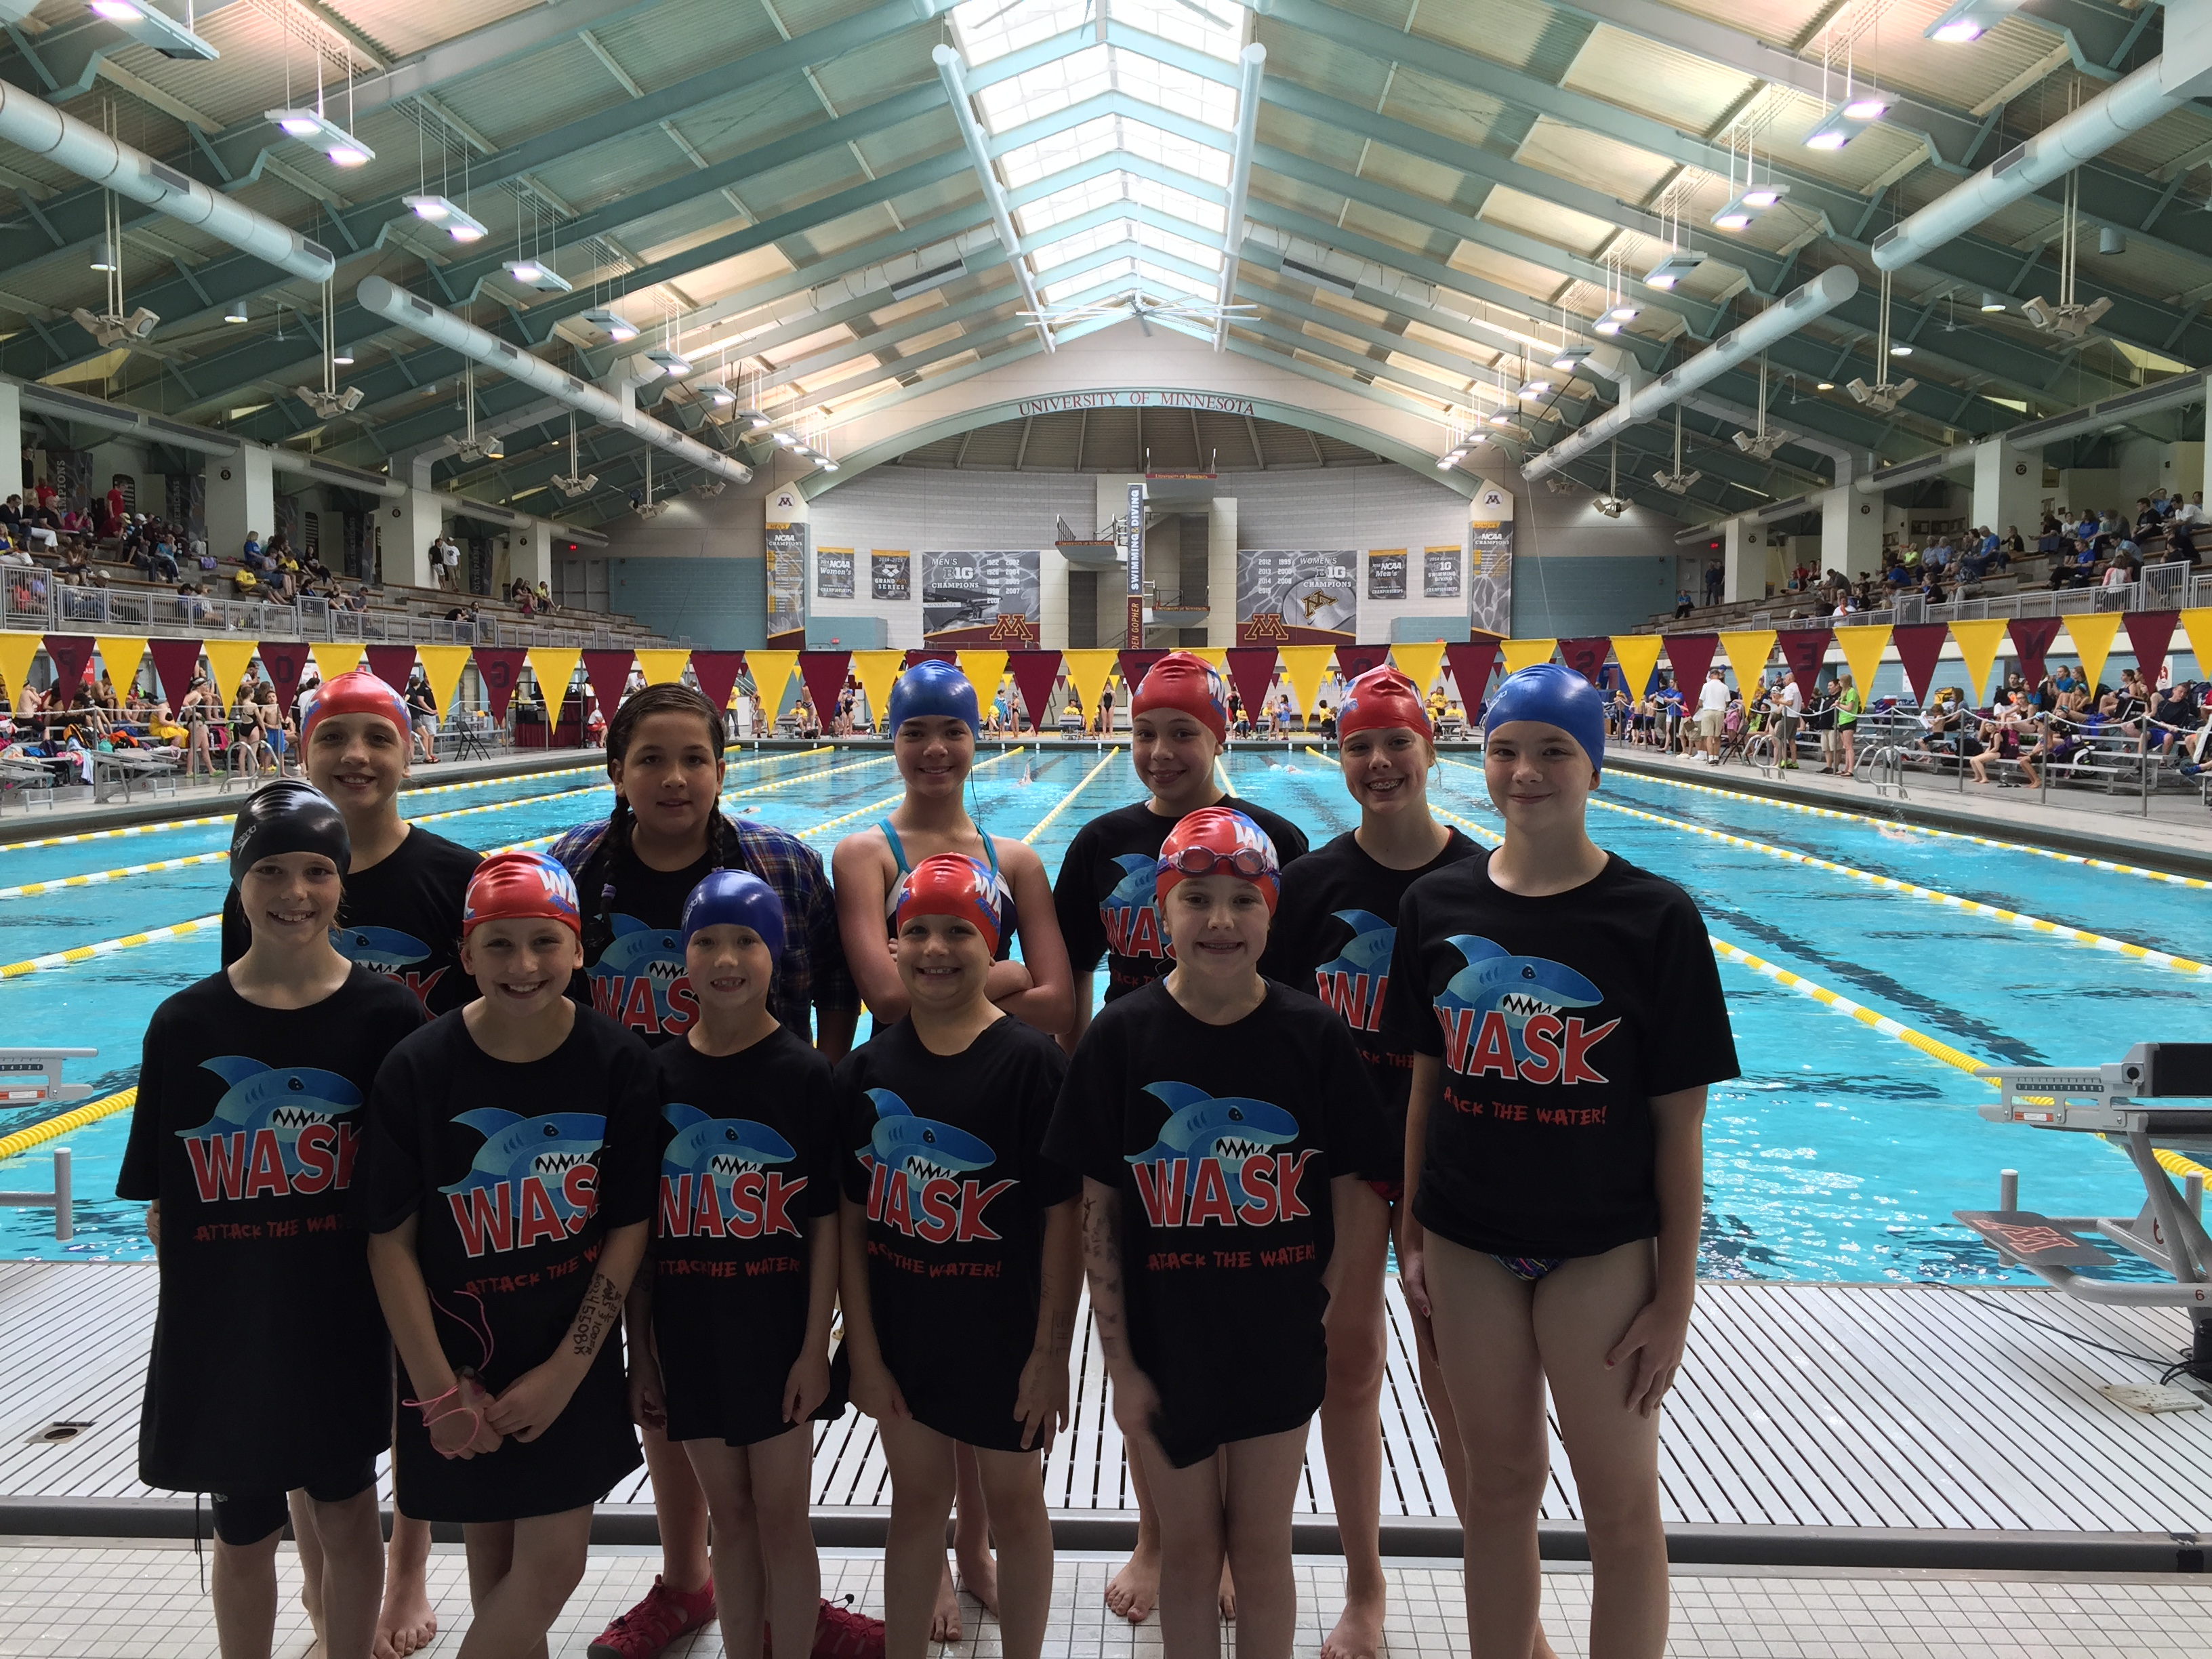 9d57ed858 Custom T-Shirts for Wask Swim Team Swims At The University Of ...